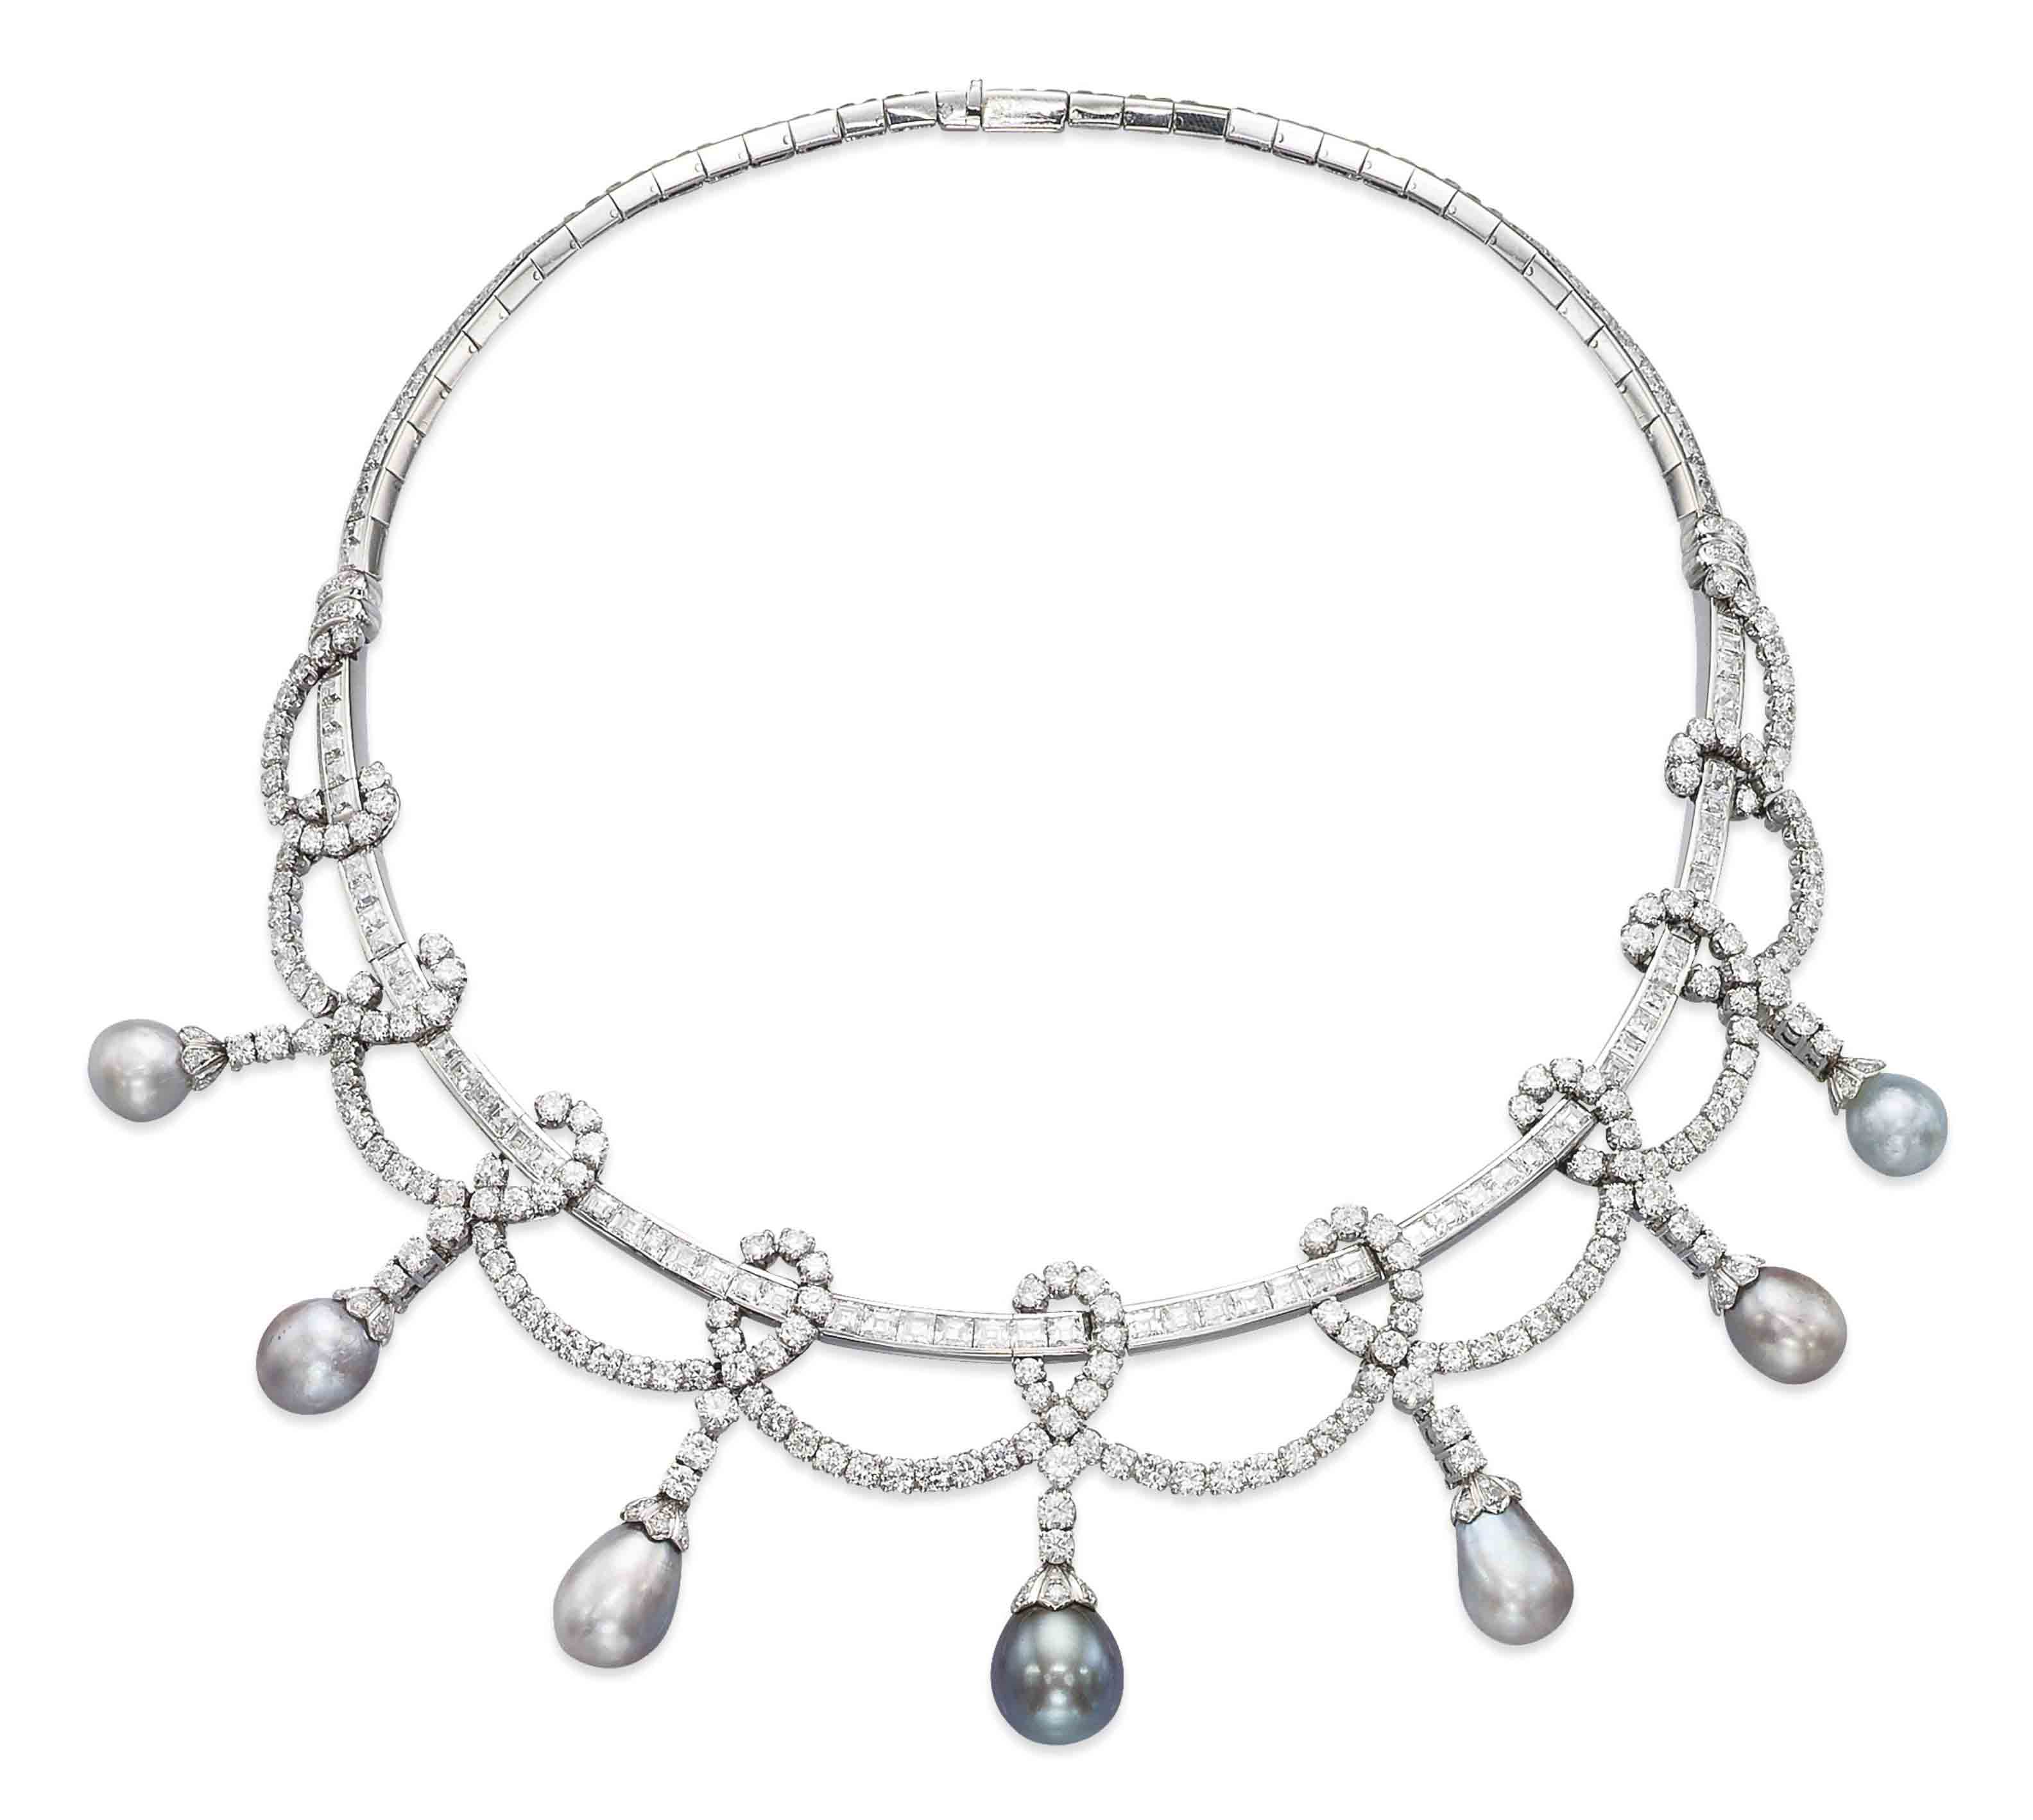 A PEARL AND DIAMOND NECKLACE, BY KOCH